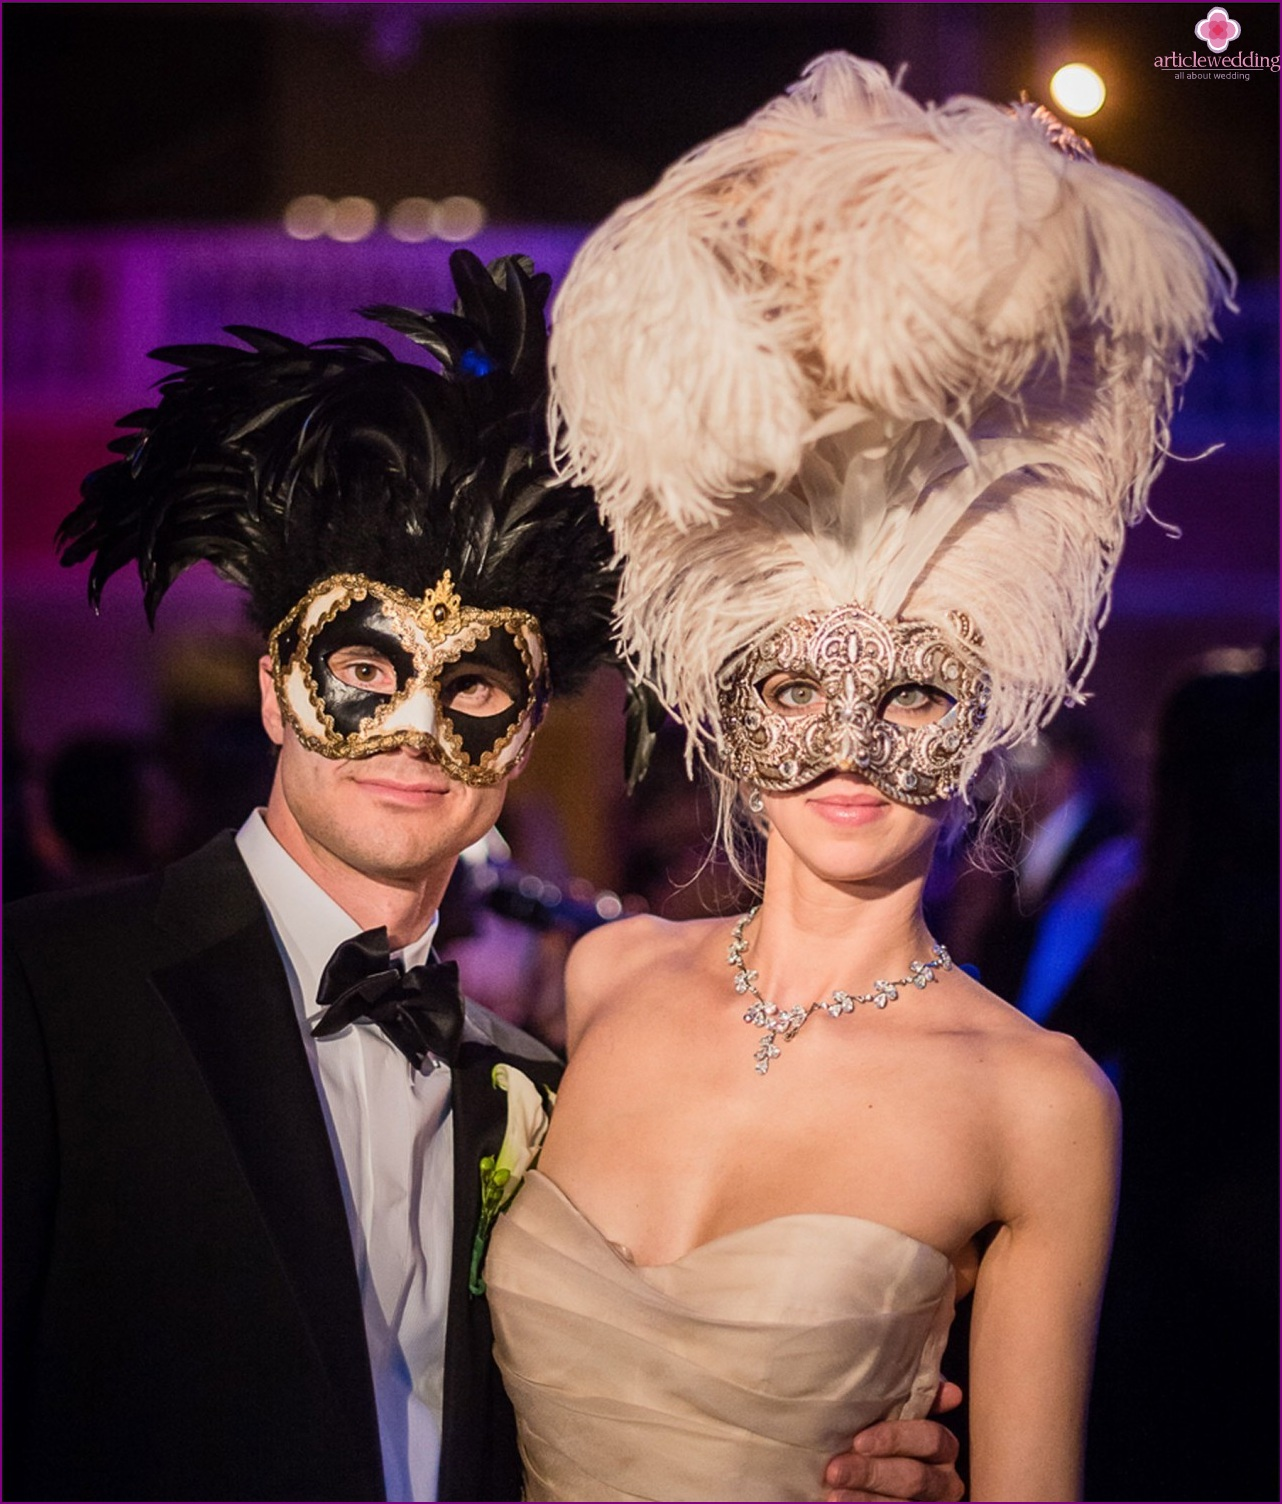 Costumes for a wedding in the style of masquerade